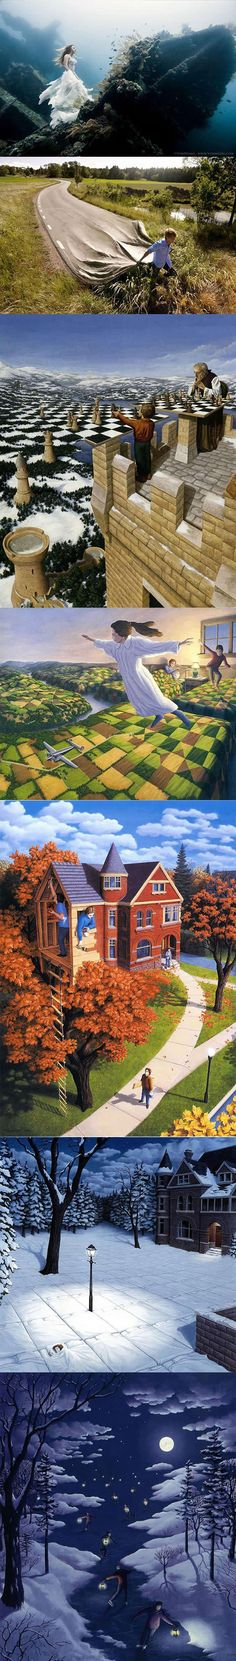 Mind Bending Optical Illusion Paintings by Rob Gonsalves (2 of 3)